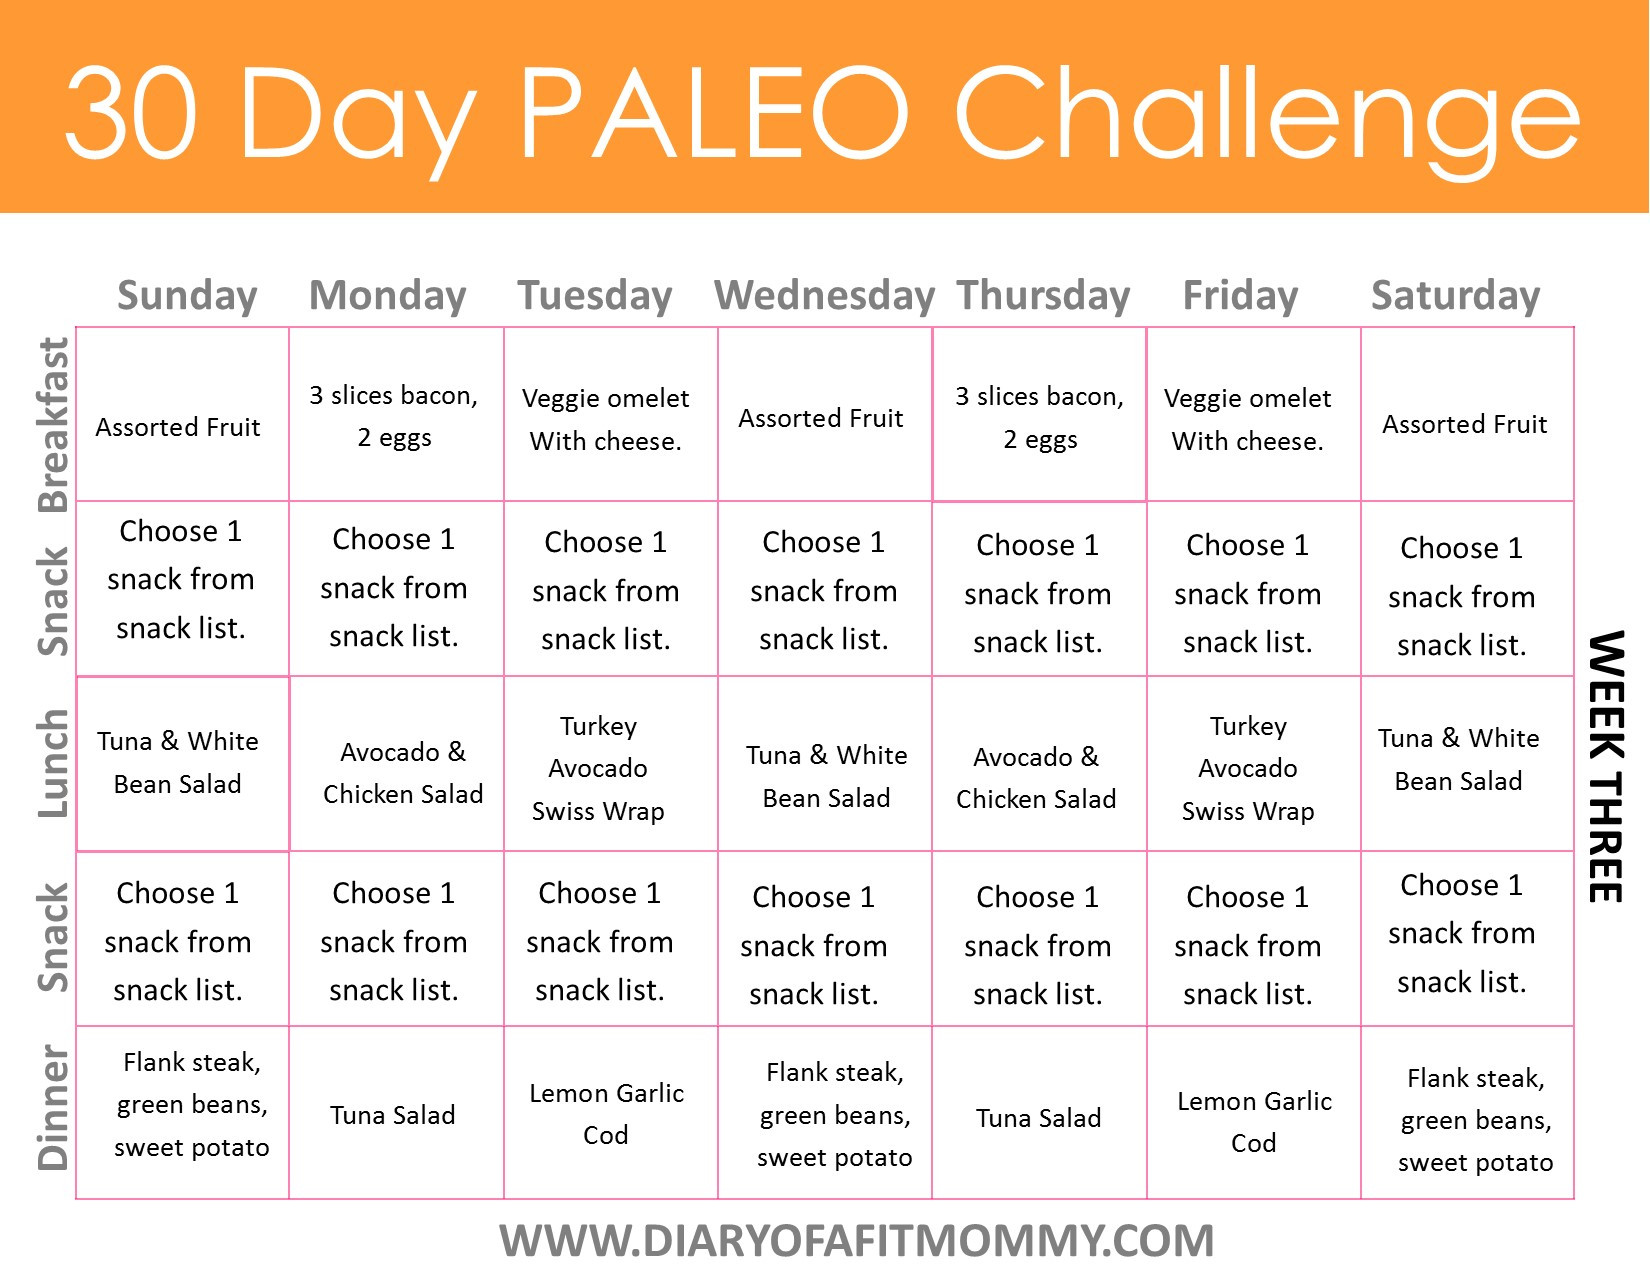 Paleo Diet Meal Plans  Diary of a Fit Mommy30 Day Paleo Challenge Diary of a